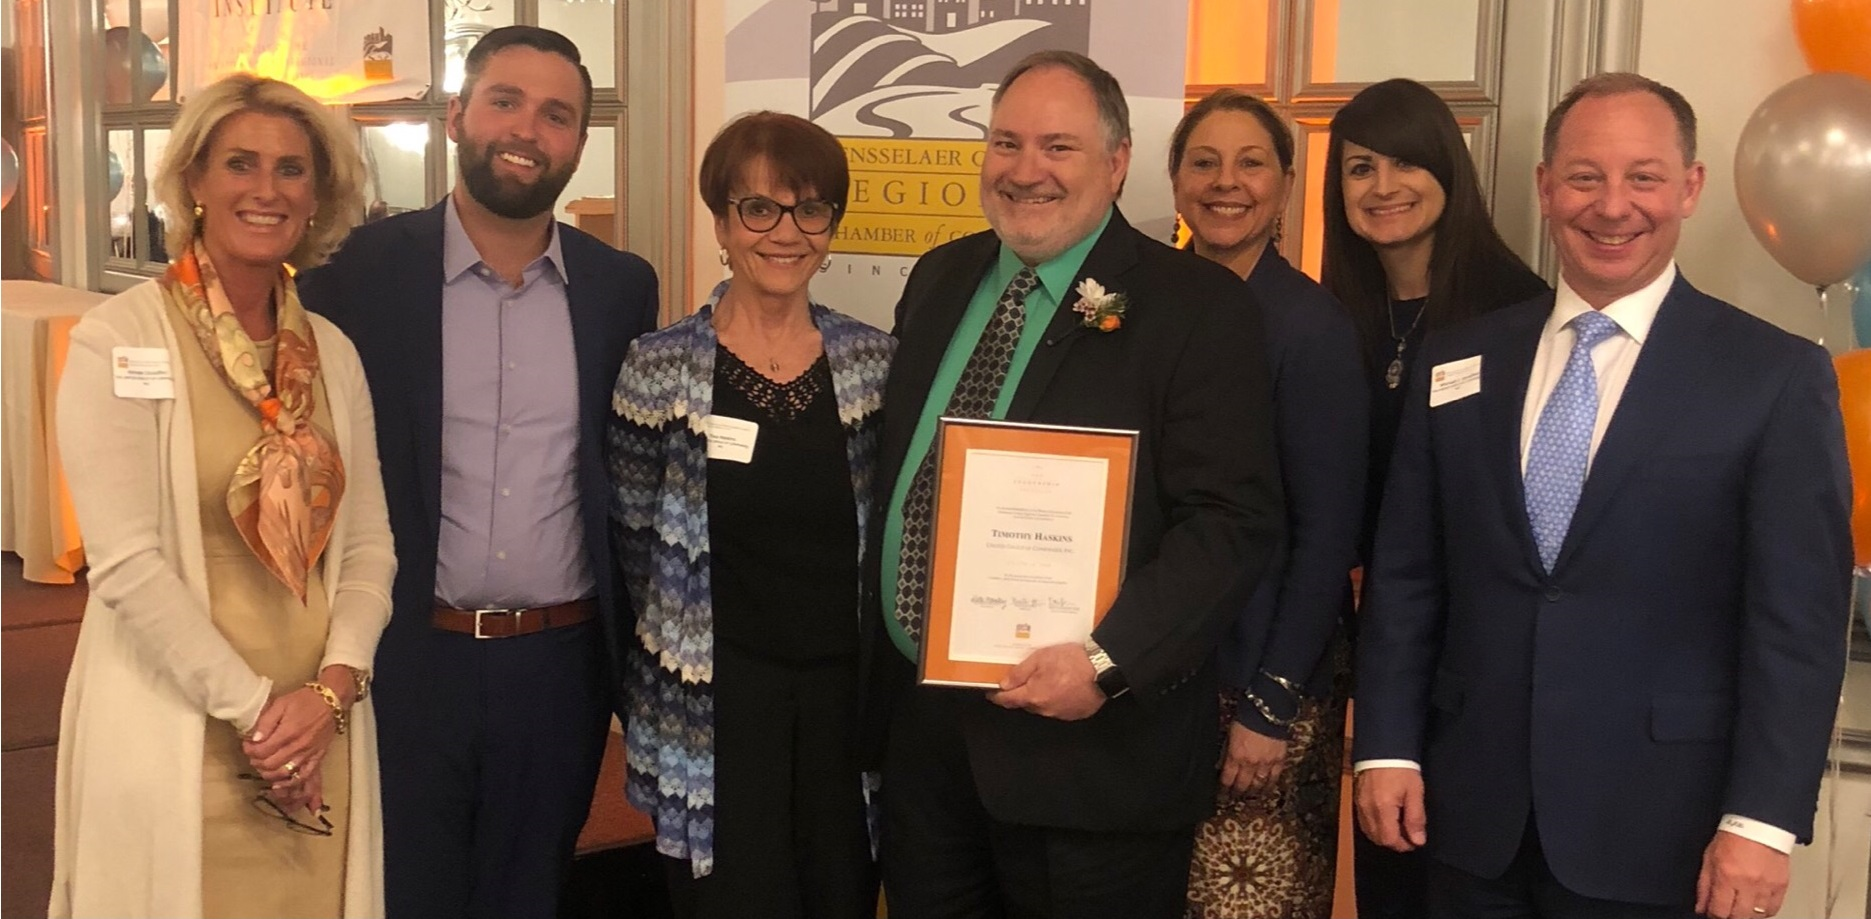 United Group's Tim Haskins Honored At Leadership Institute Class Of 2019 Ceremony